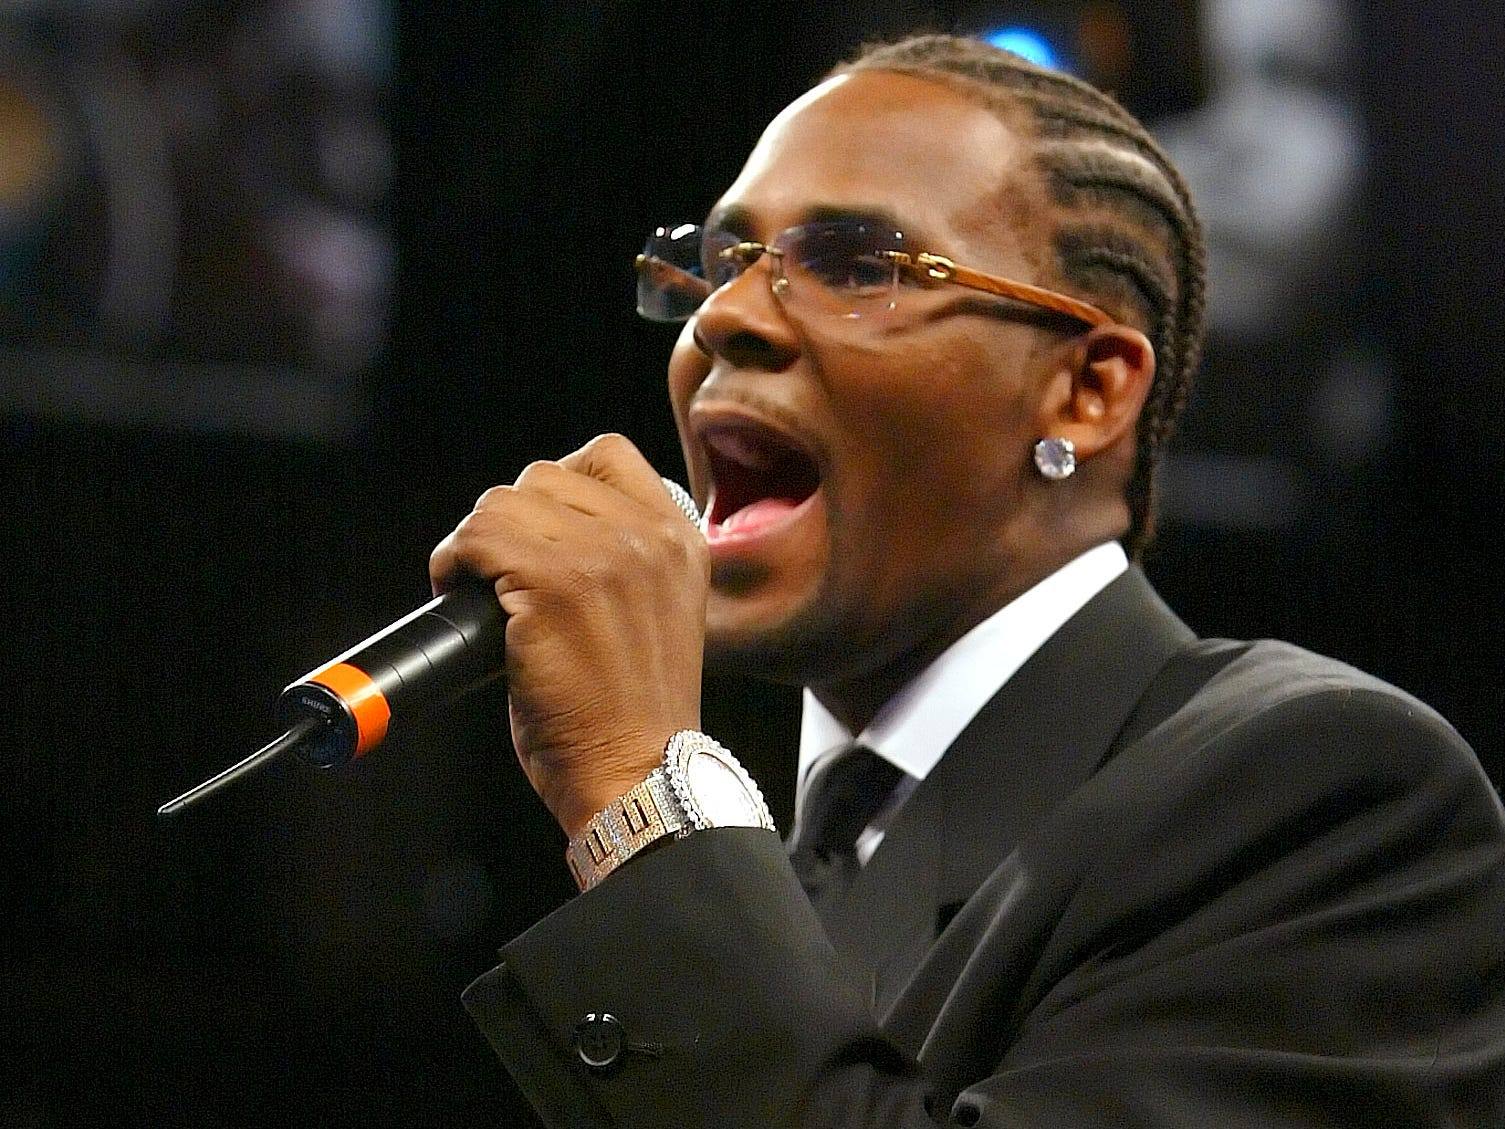 R. Kelly sings the Nation Anthem before the Jermain Taylor-Bernard Hopkins undisputed world middleweight championship bout on Dec. 3, 2005, in Las Vegas.